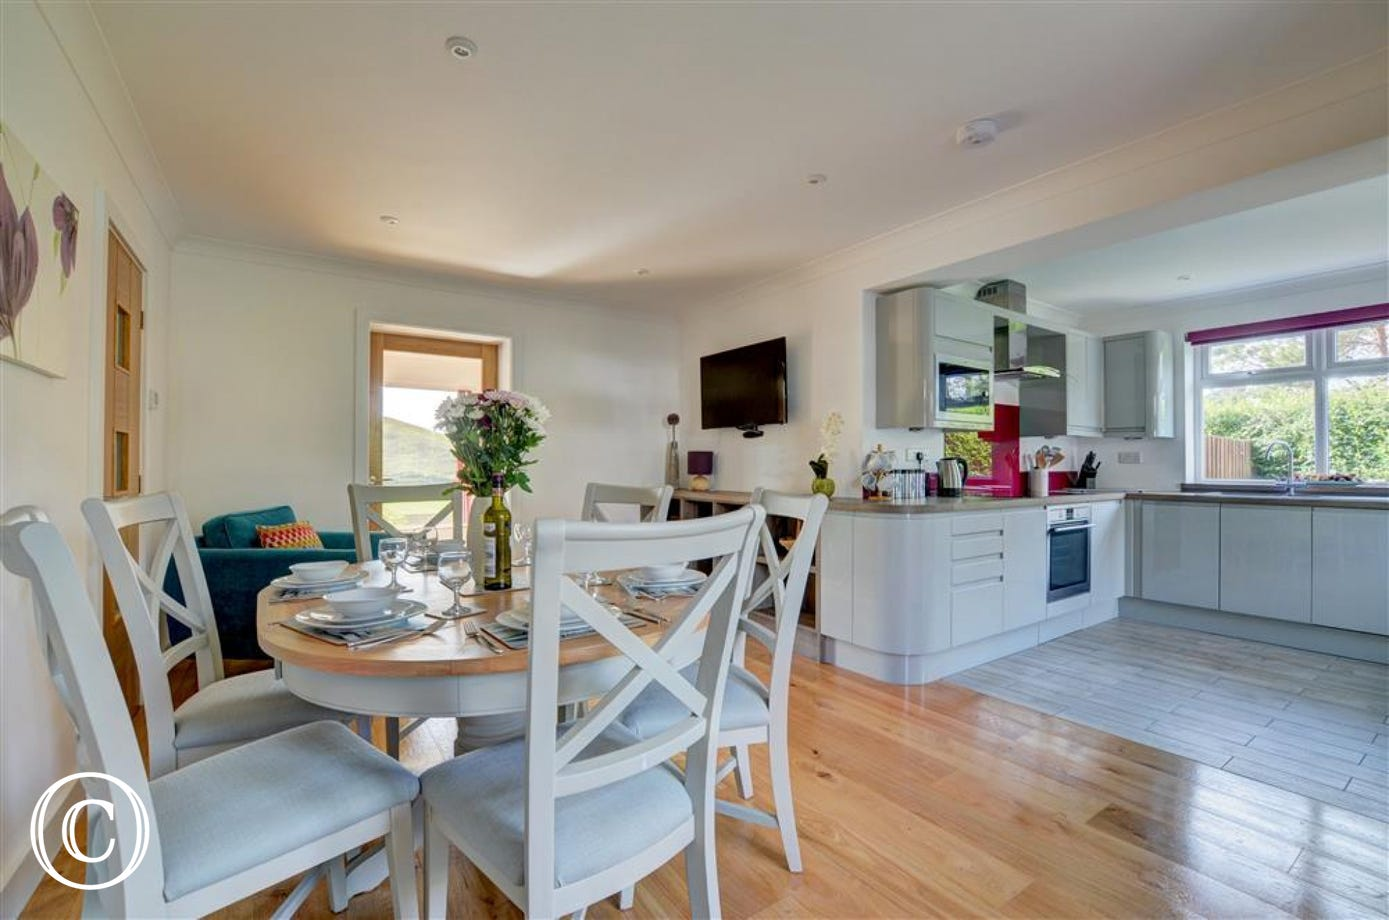 The well-equipped and sociable kitchen and dining space